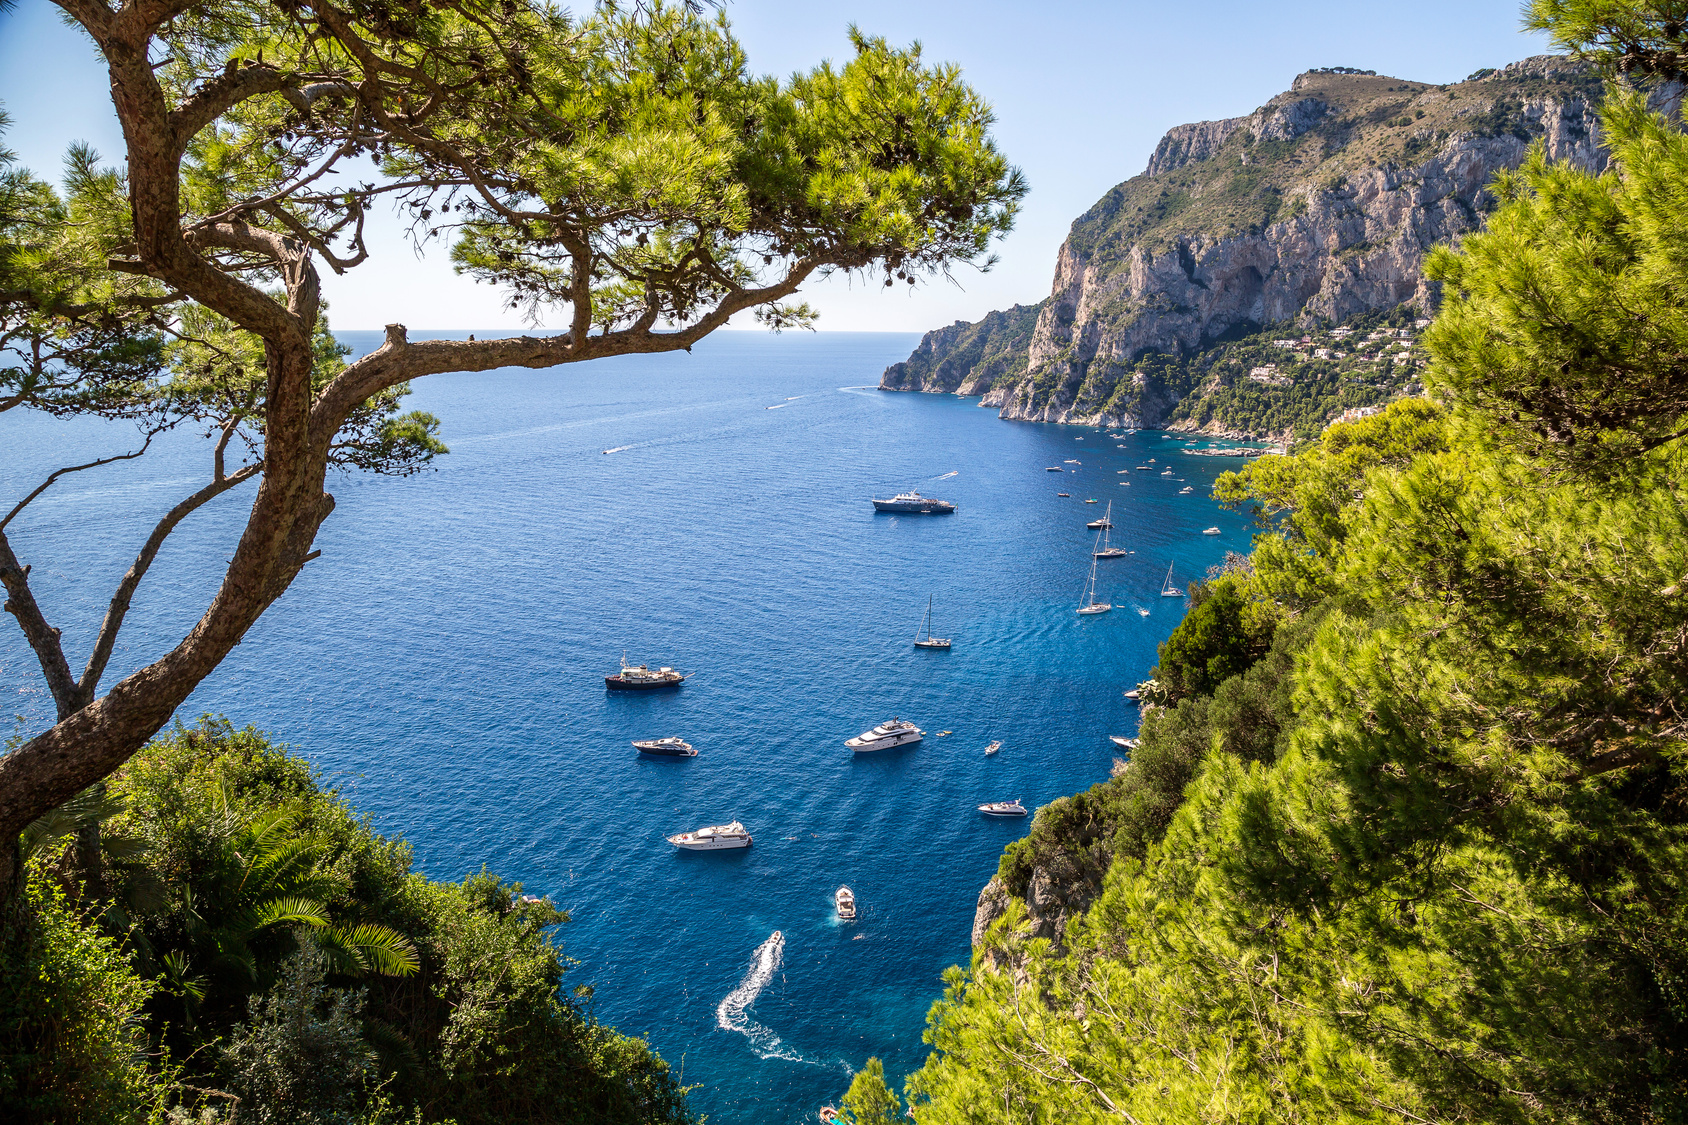 Across the Mediterranean - combine driving fun with the most beautiful yacht locations